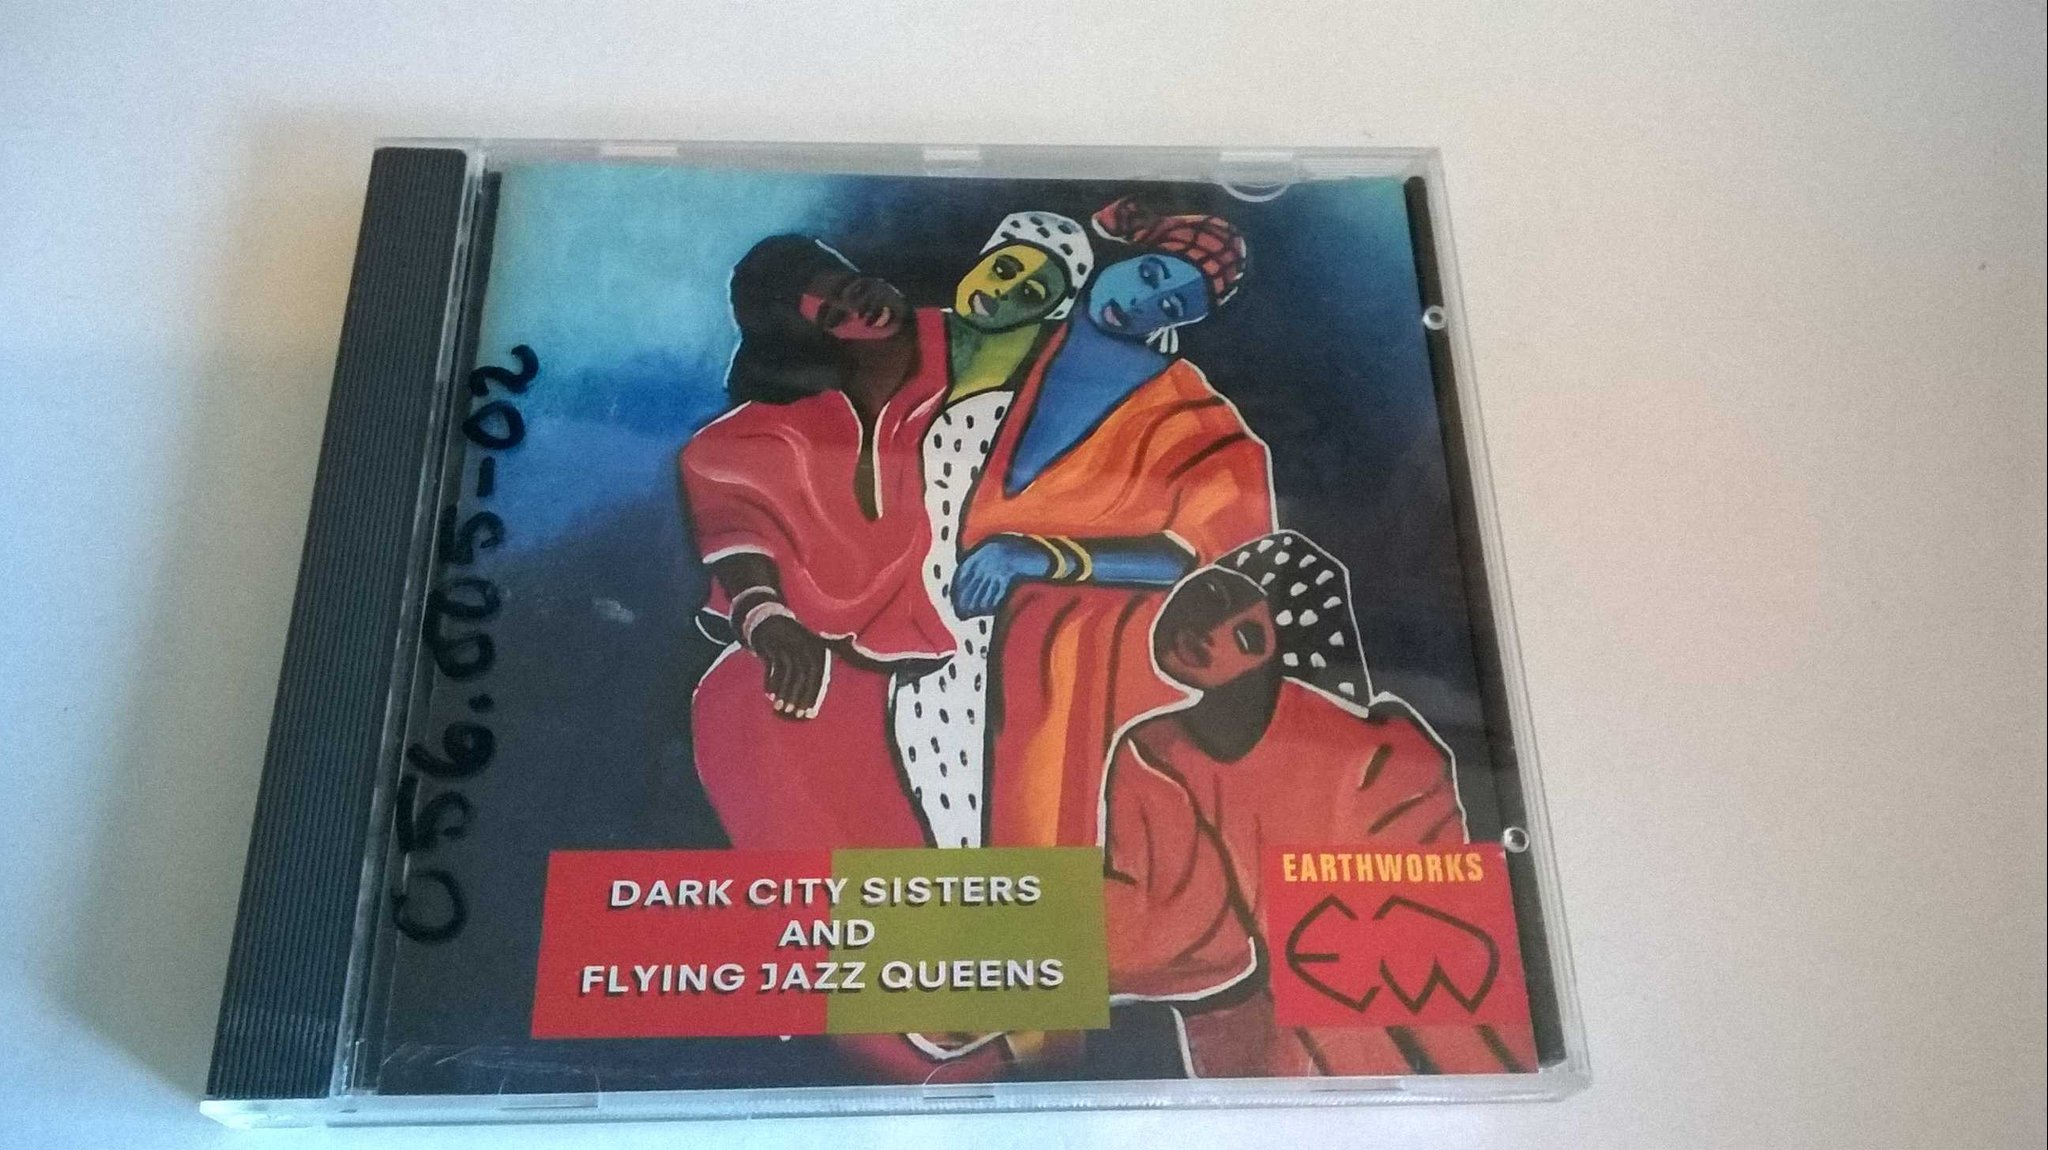 Dark City Sisters and Flying Jazz Queens - Earthworks, CD